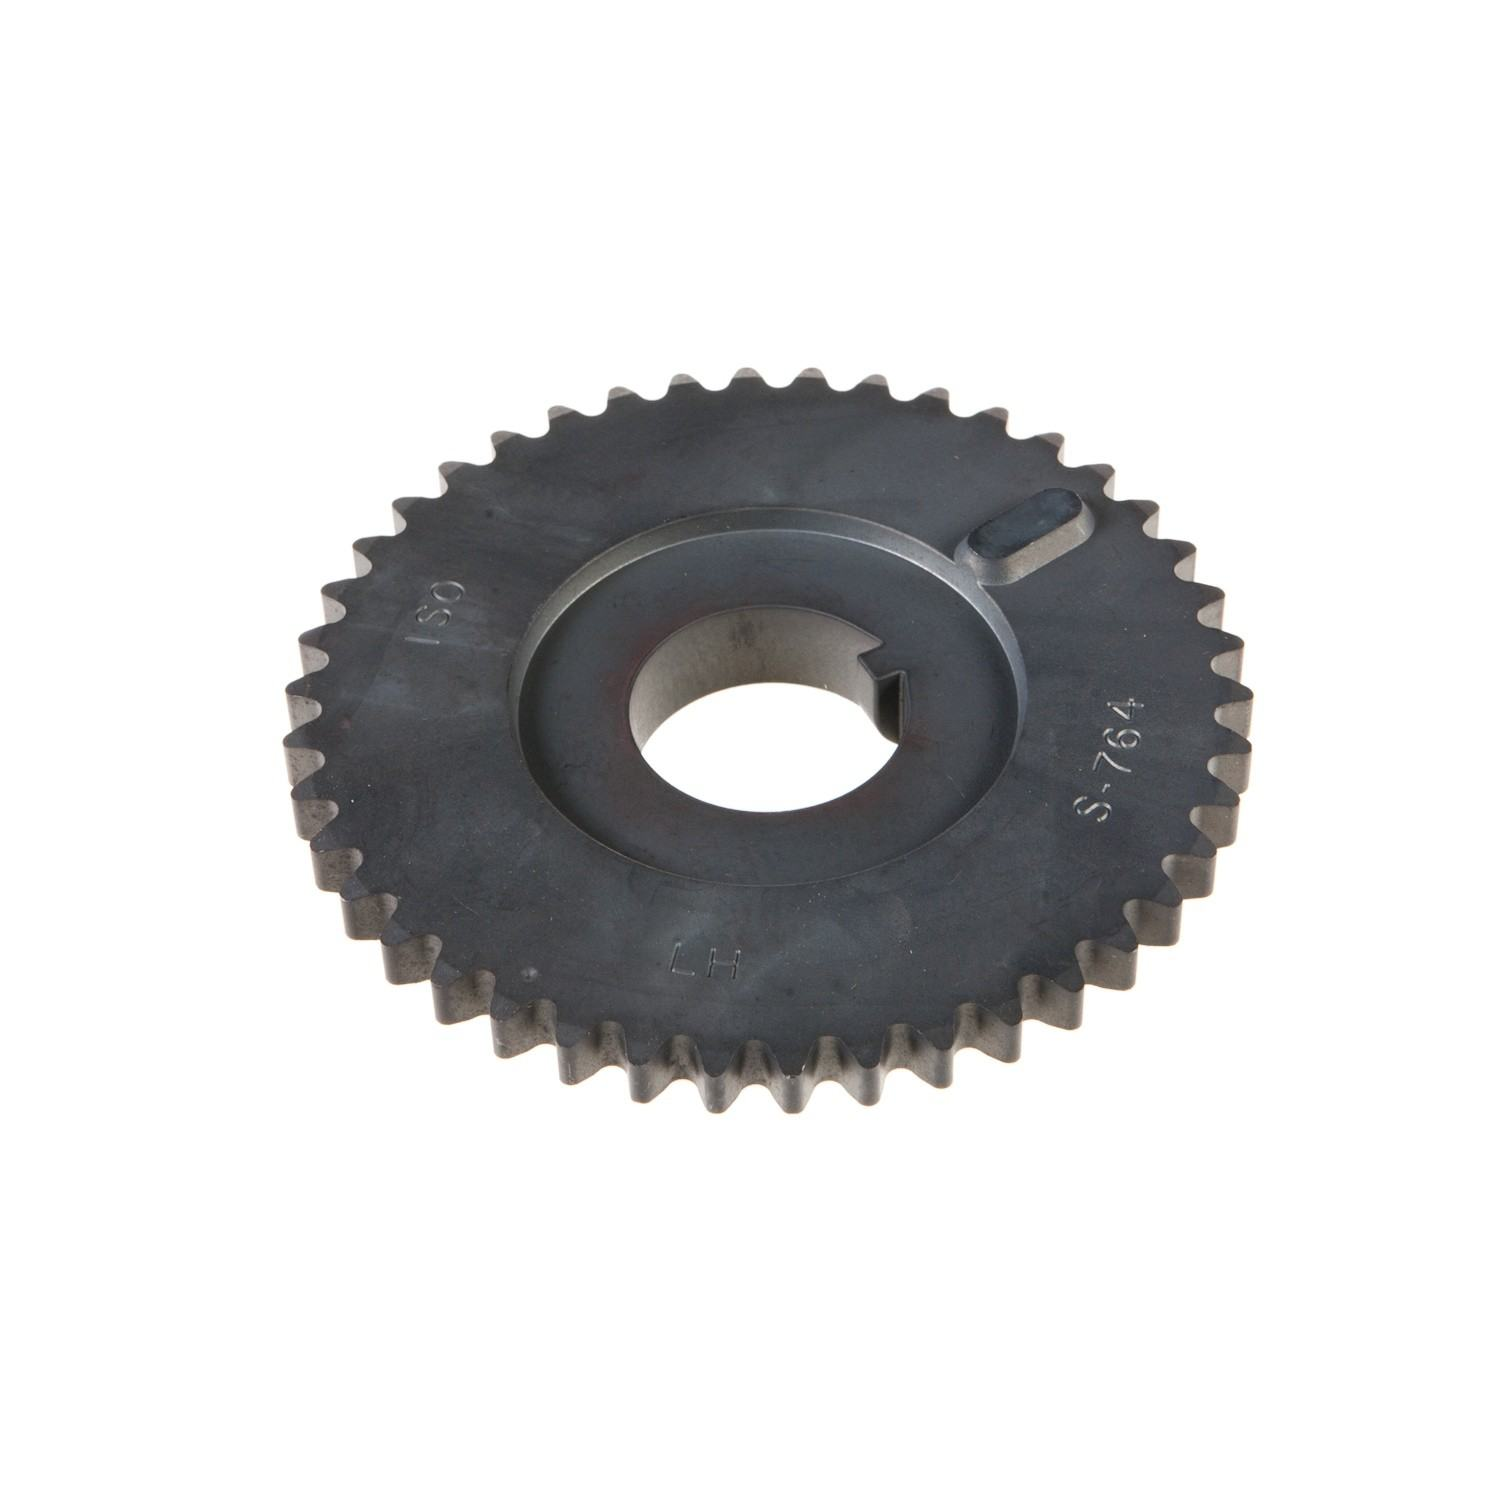 MELLING - Stock Engine Timing Camshaft Sprocket - MEL S764